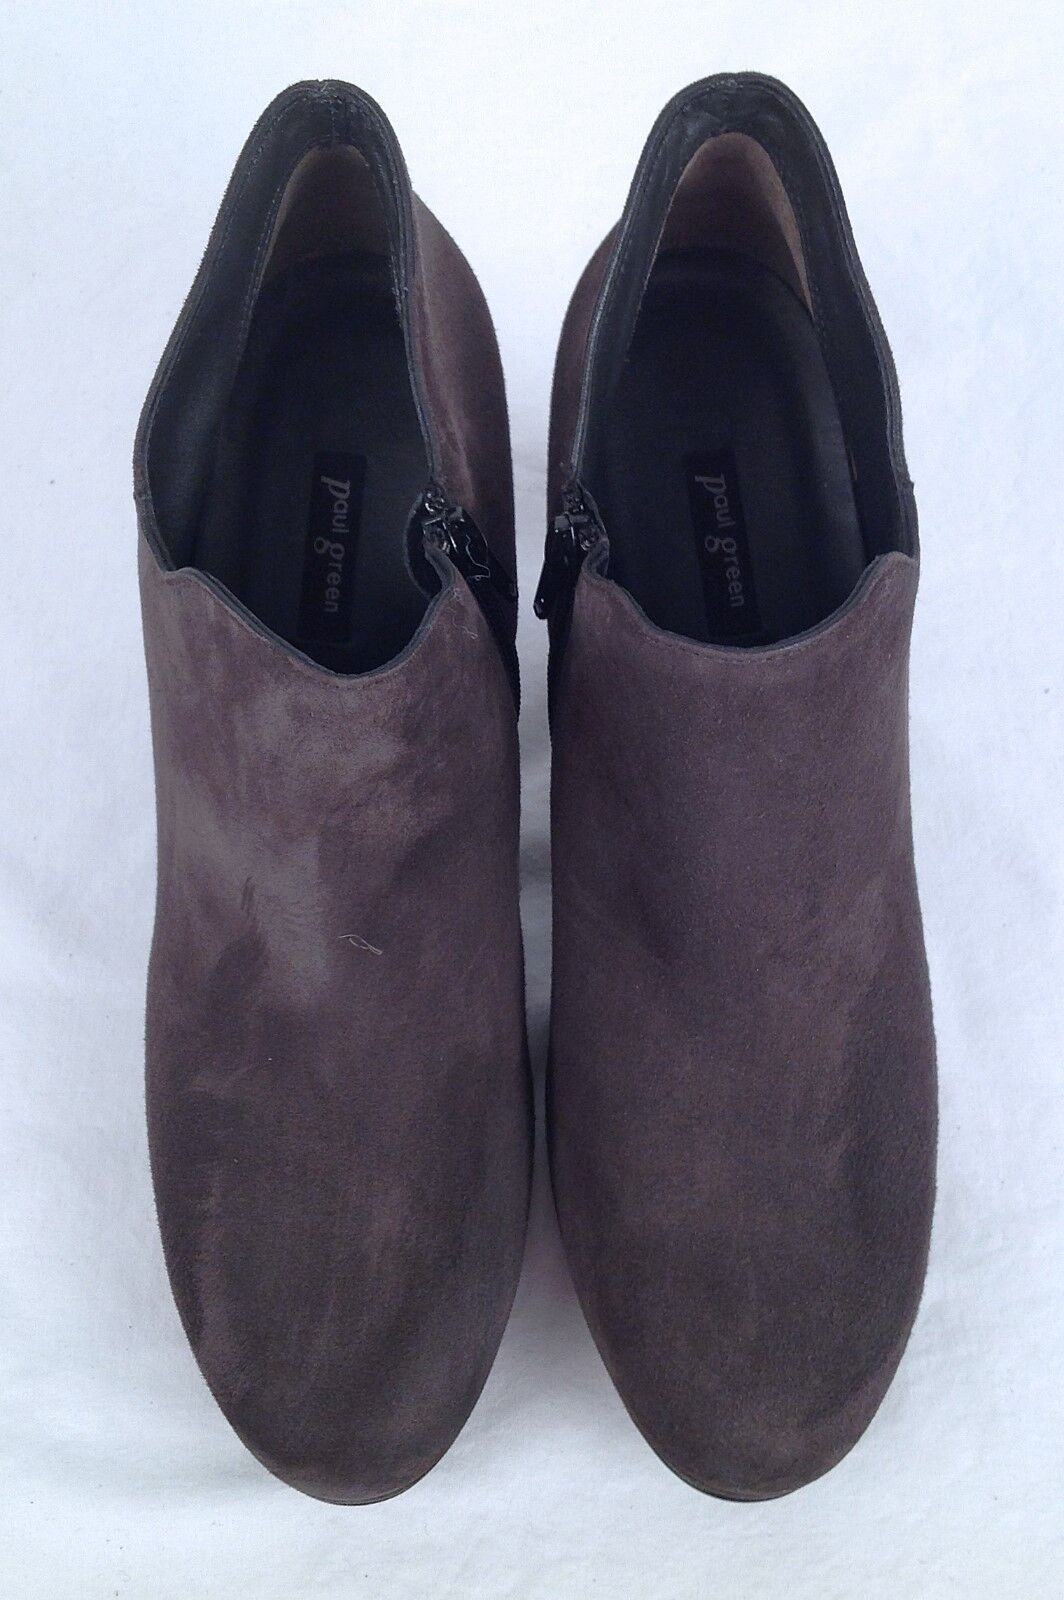 New!!Paul Green 'Jazzy' Bootie- Grey Suede- Size 10 US/ 7.5 AU $380- (P4)